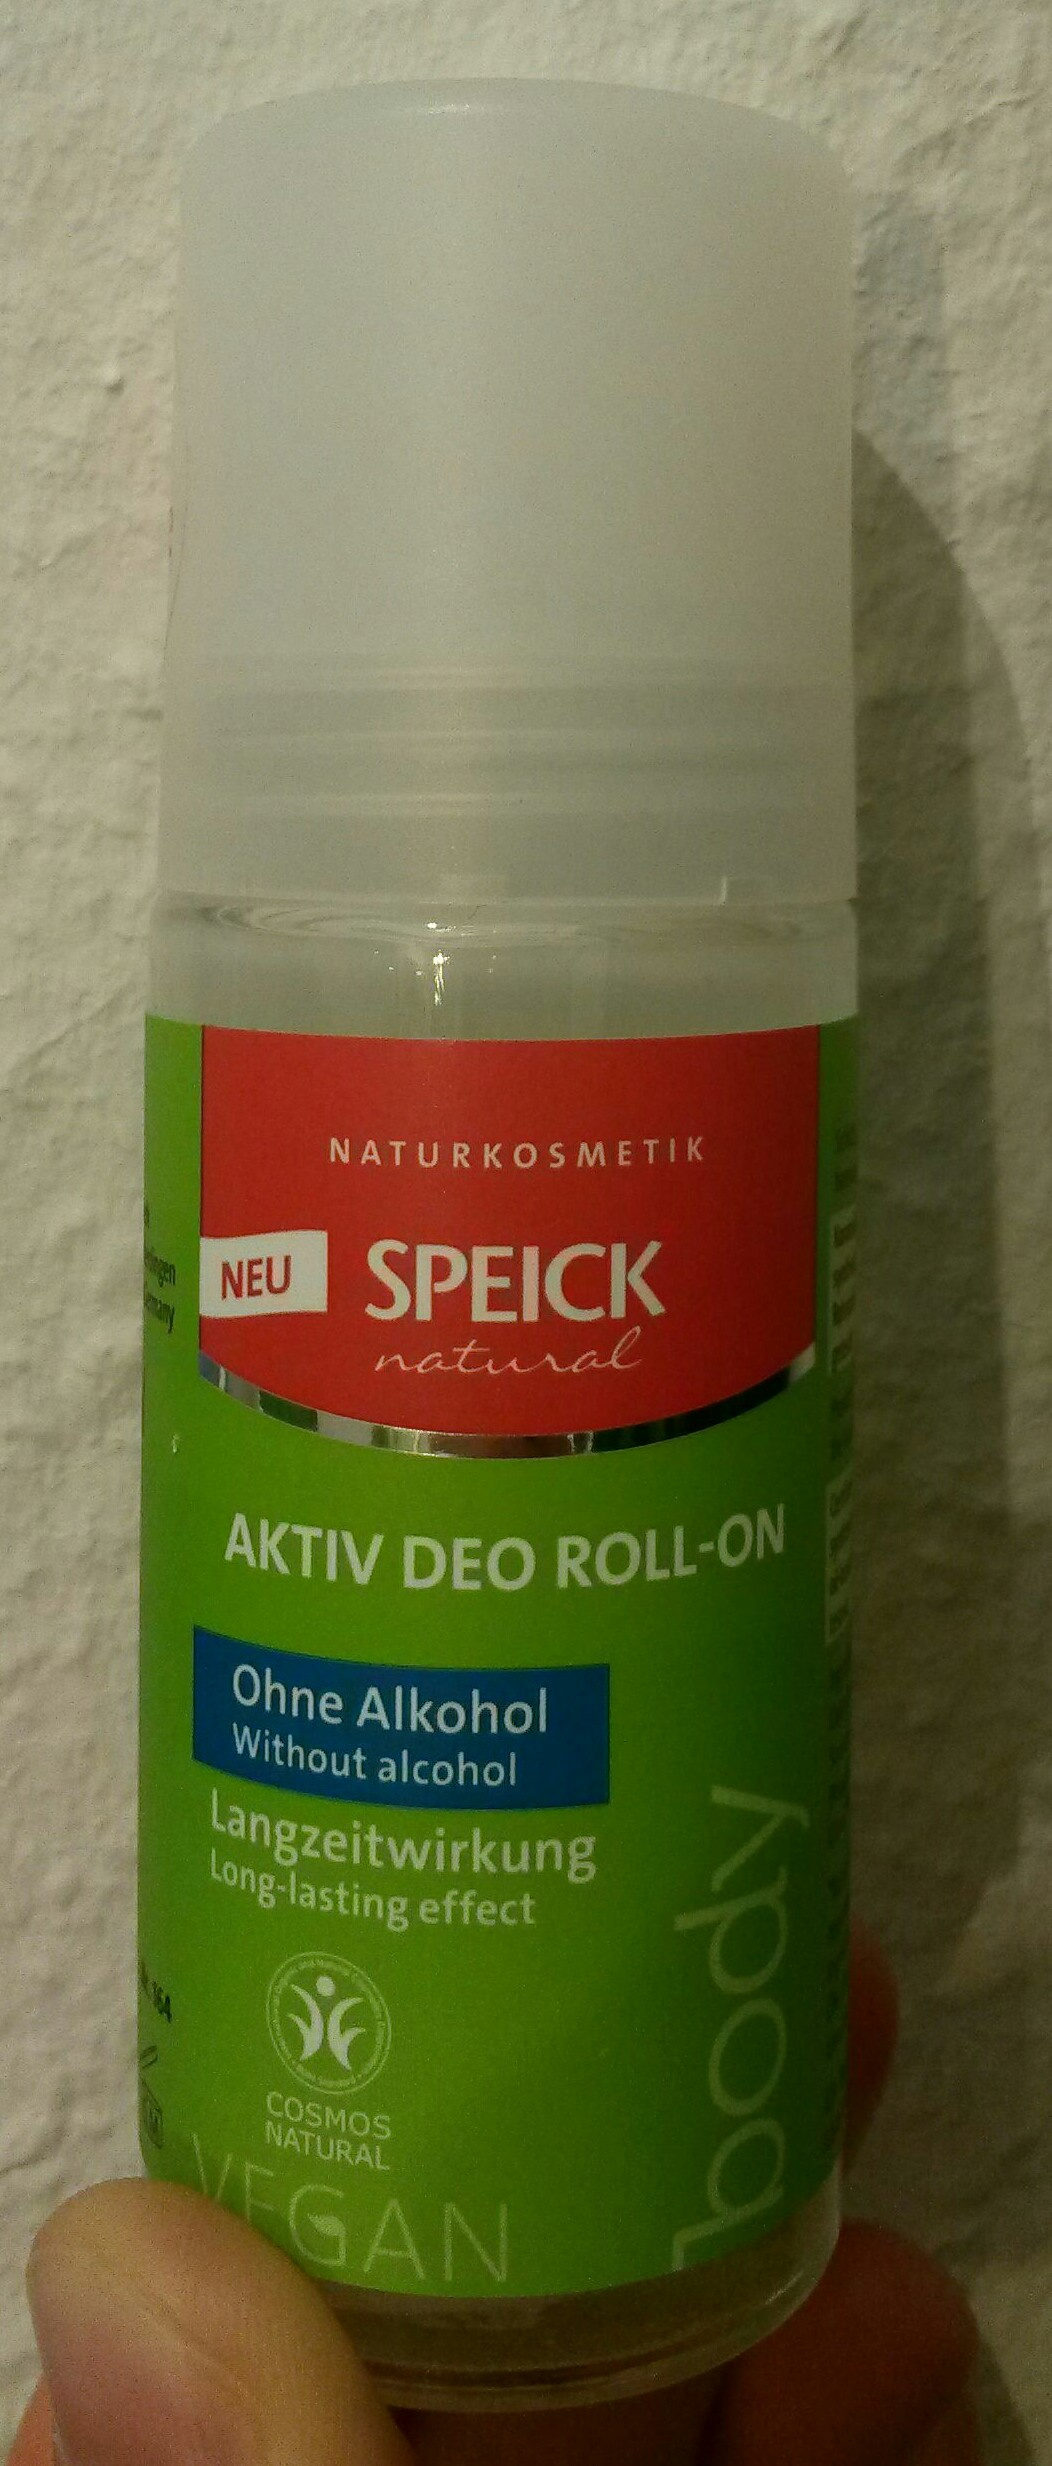 Active Deo Roll-On (Ohne Alkohol) - Product